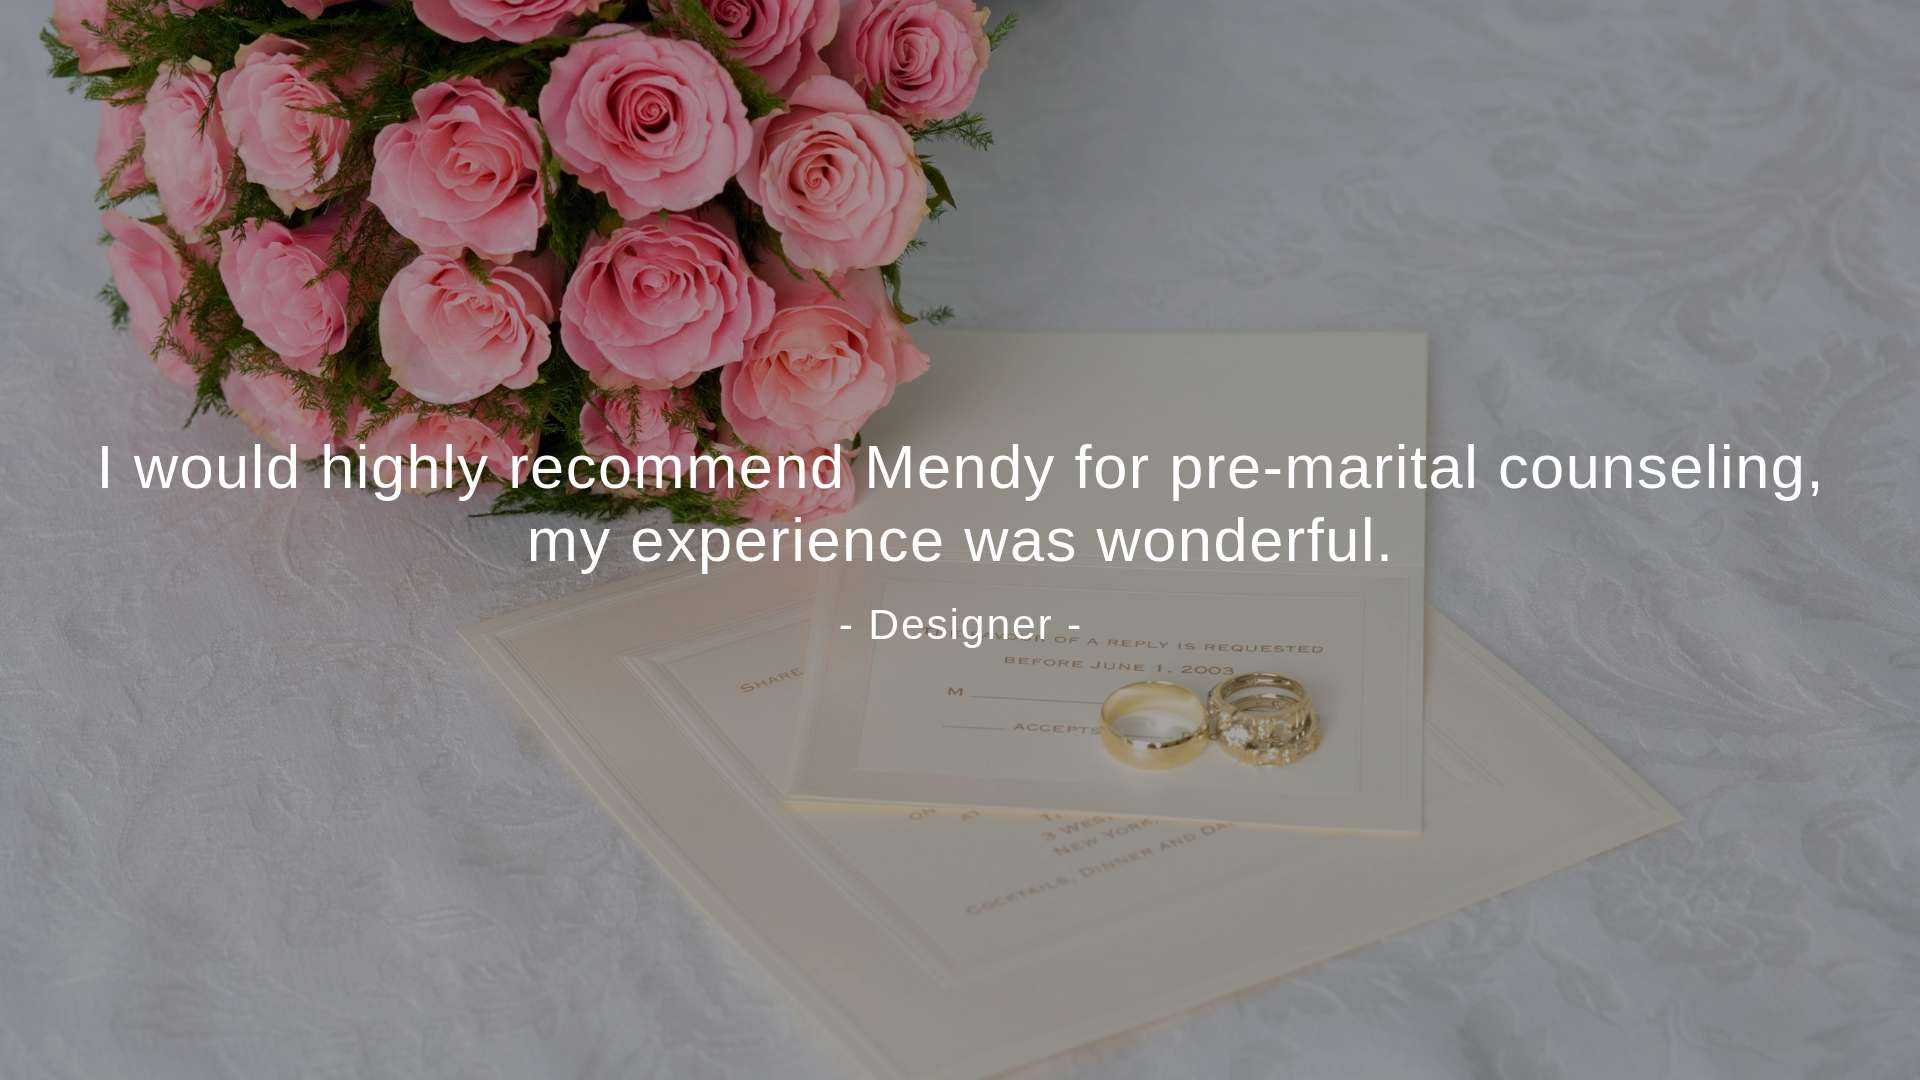 """I would highly recommend Mendy for pre-marital counselling, my experience was wonderful,"" A designer said."